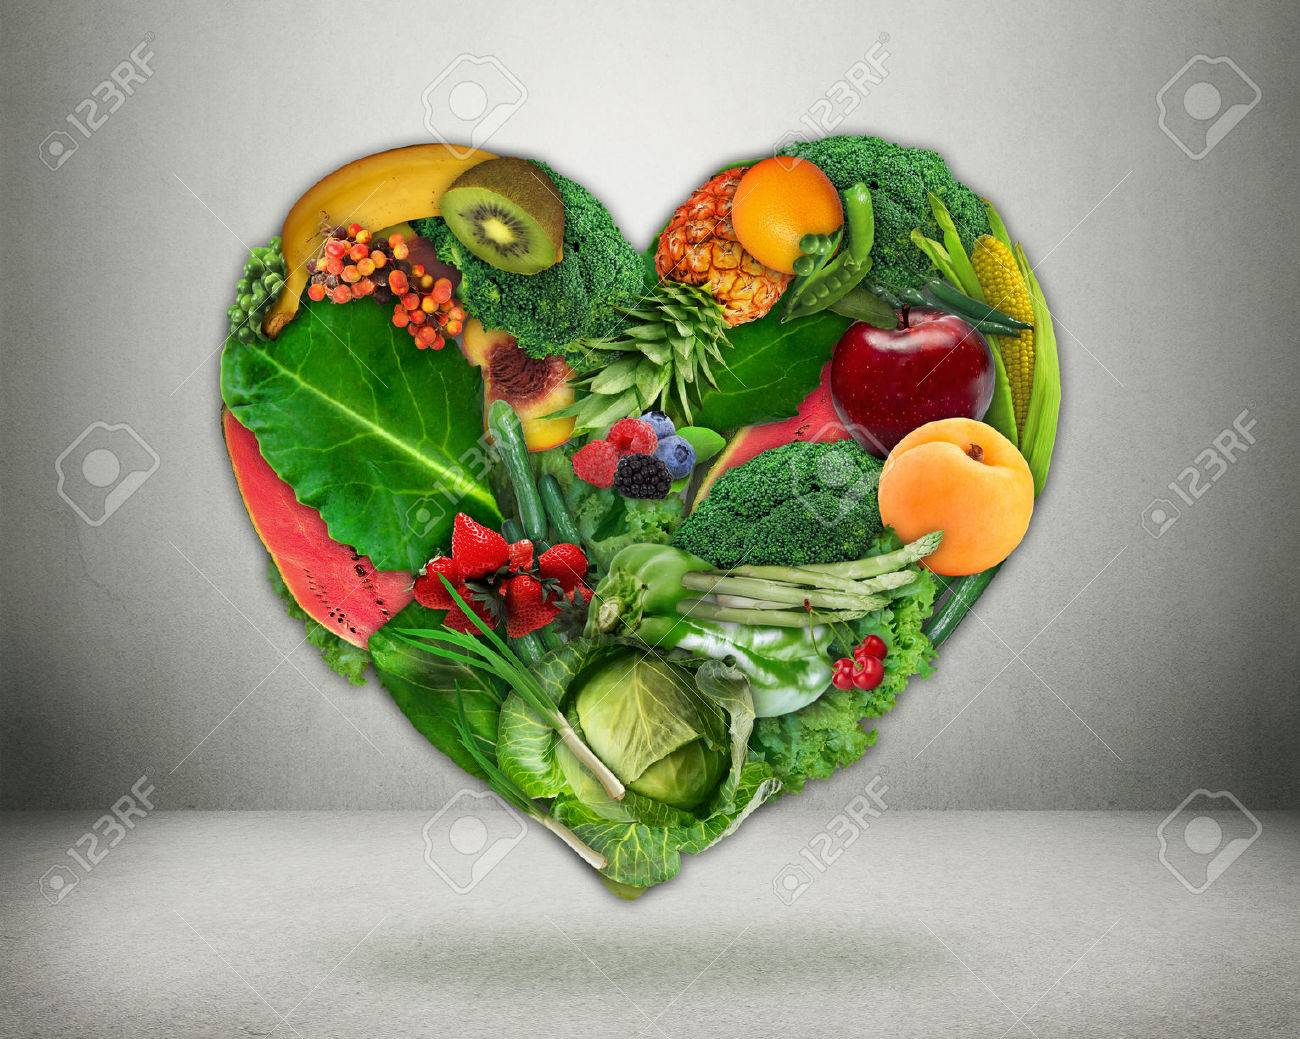 Healthy diet choice and heart health concept. Green vegetables and fruits shaped as heart Heart disease prevention and food. Medical health care and nutrition dieting - 44098898